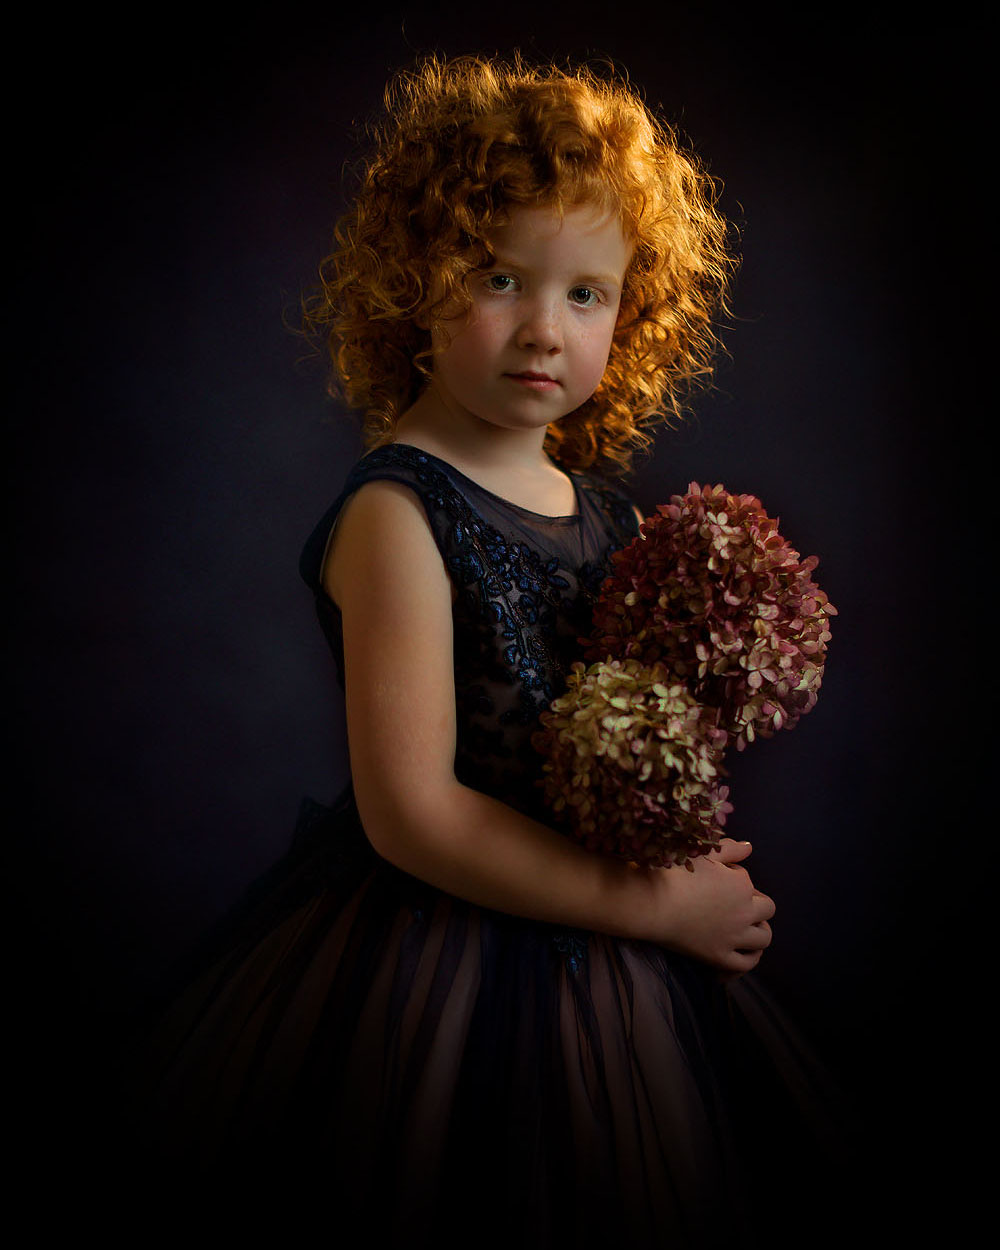 Canon mirrorless EOS R Fine art portrait of a little young curly red head girl with flowers in her hand standing in a blue wedding dress like Rembrandt by Willie Kers copy